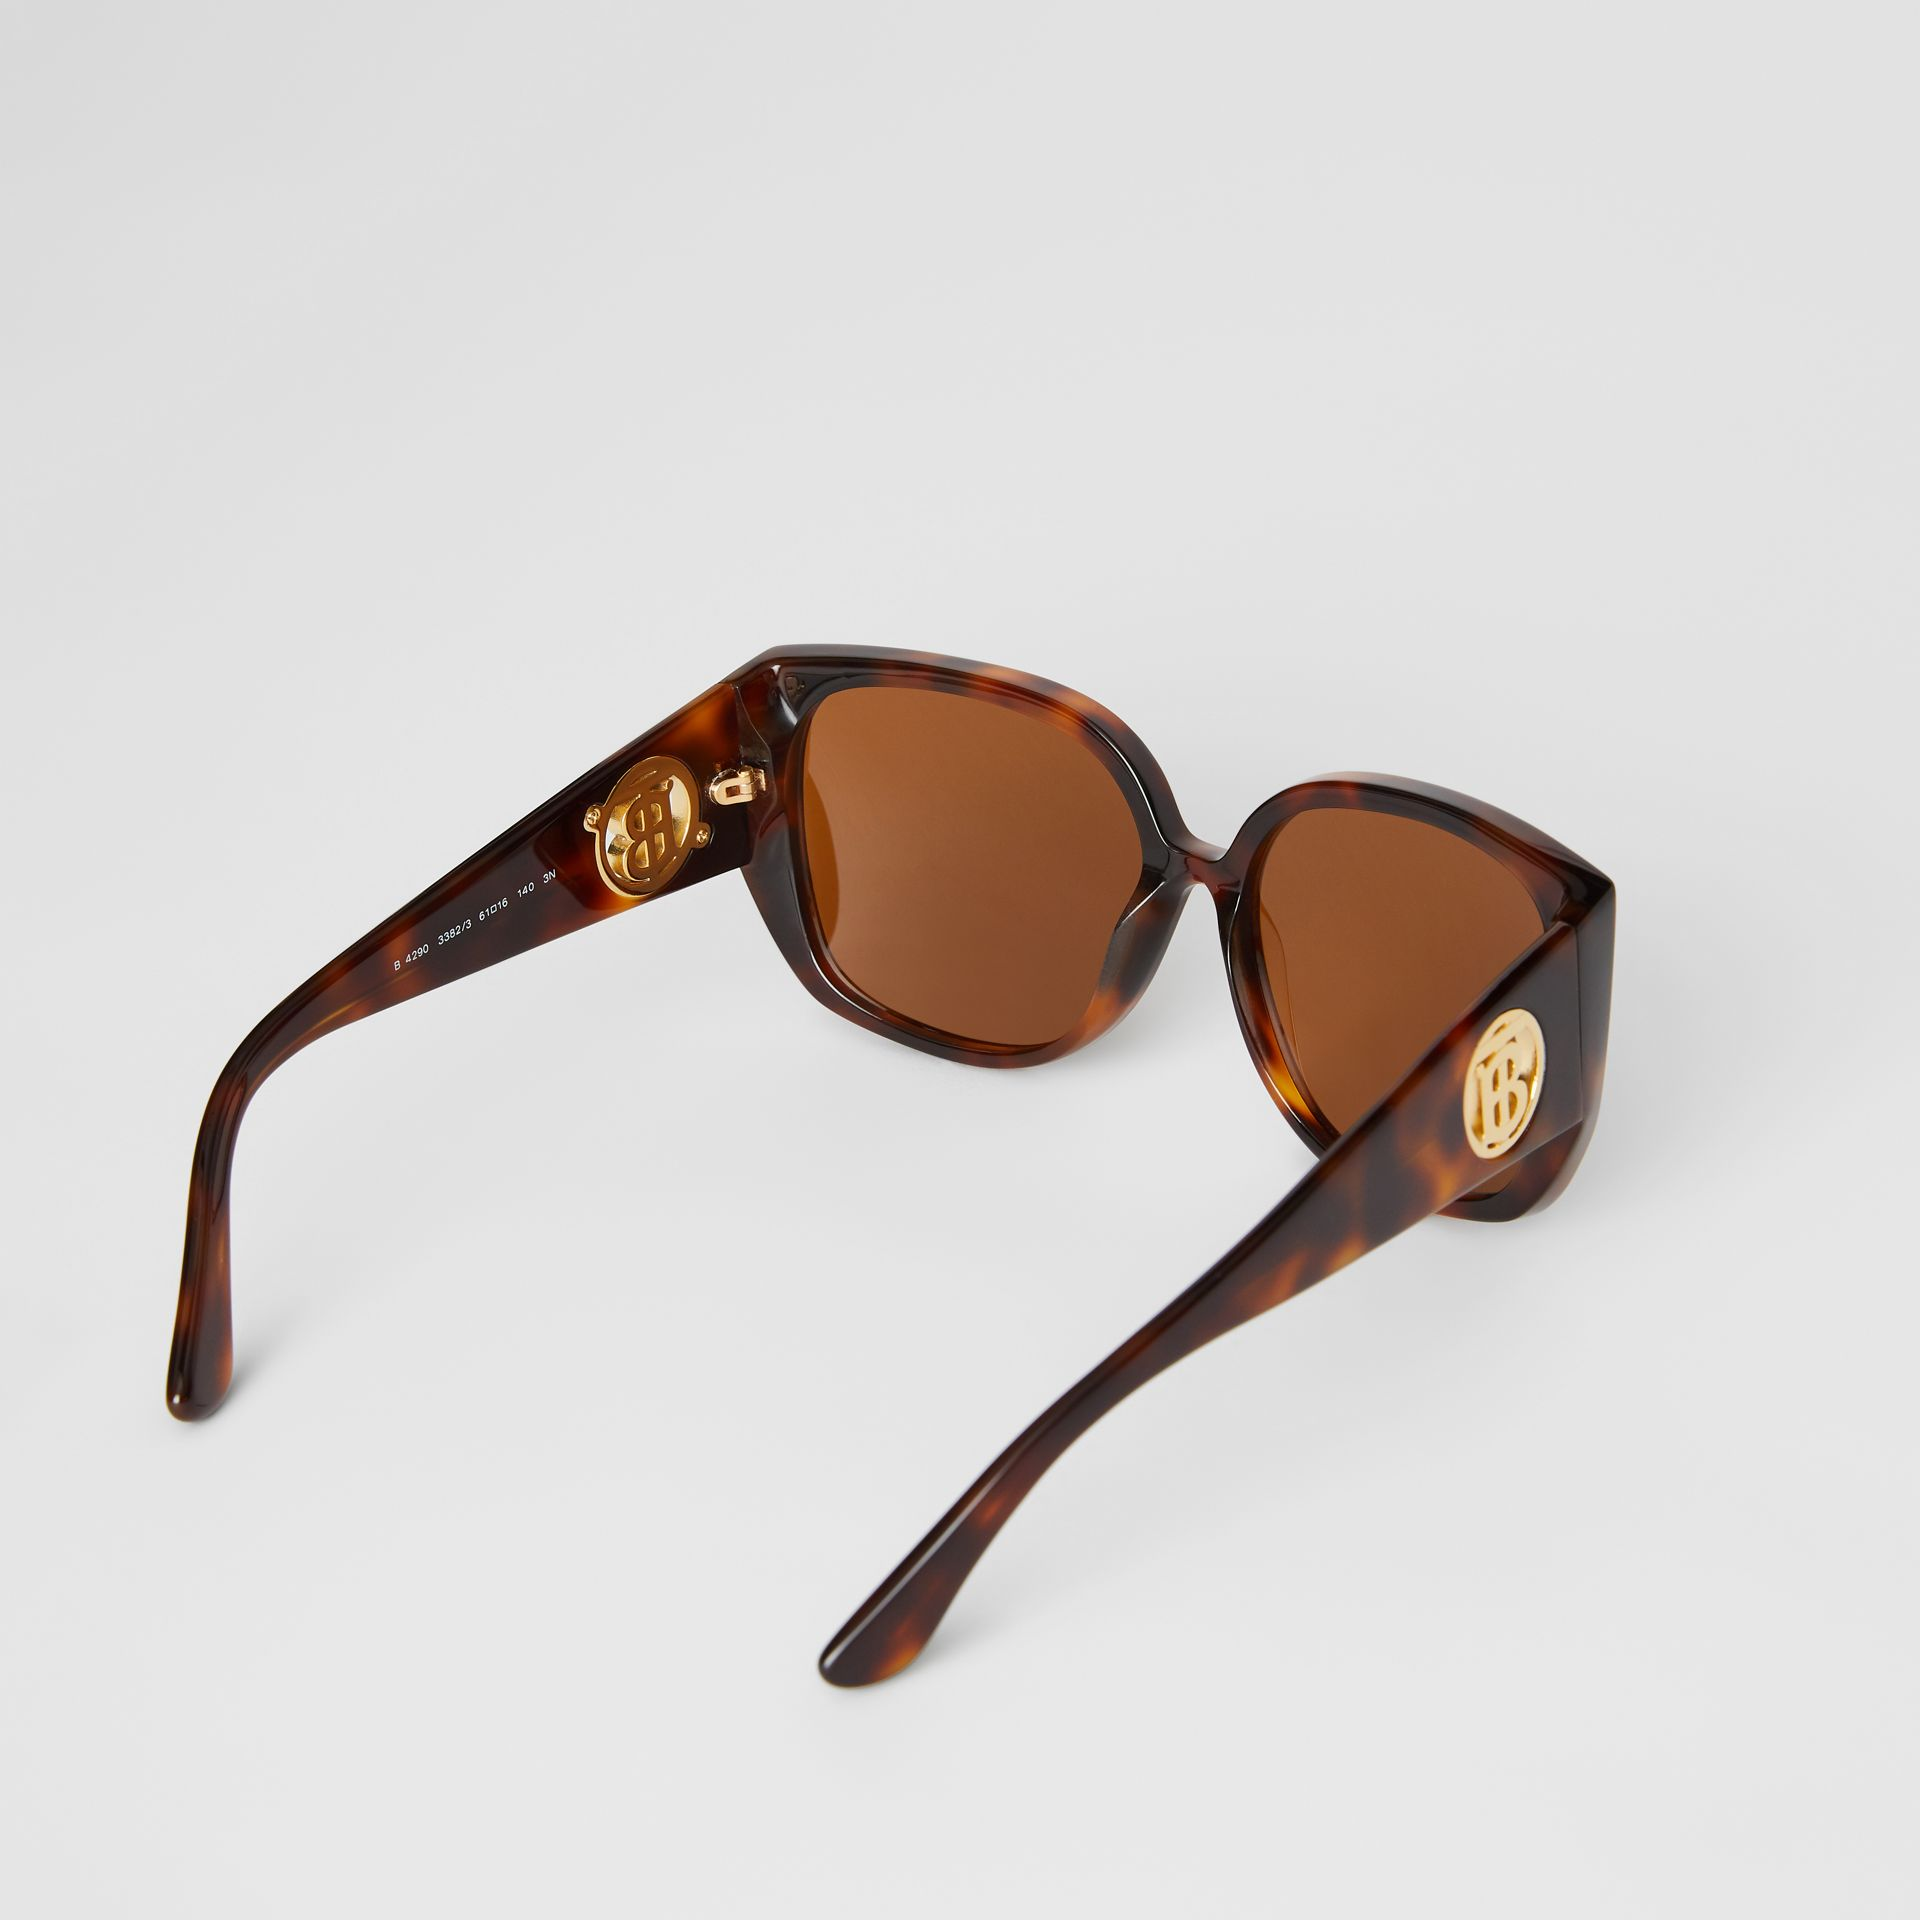 Monogram Detail Round Frame Sunglasses in Tortoise Shell - Women | Burberry - gallery image 3